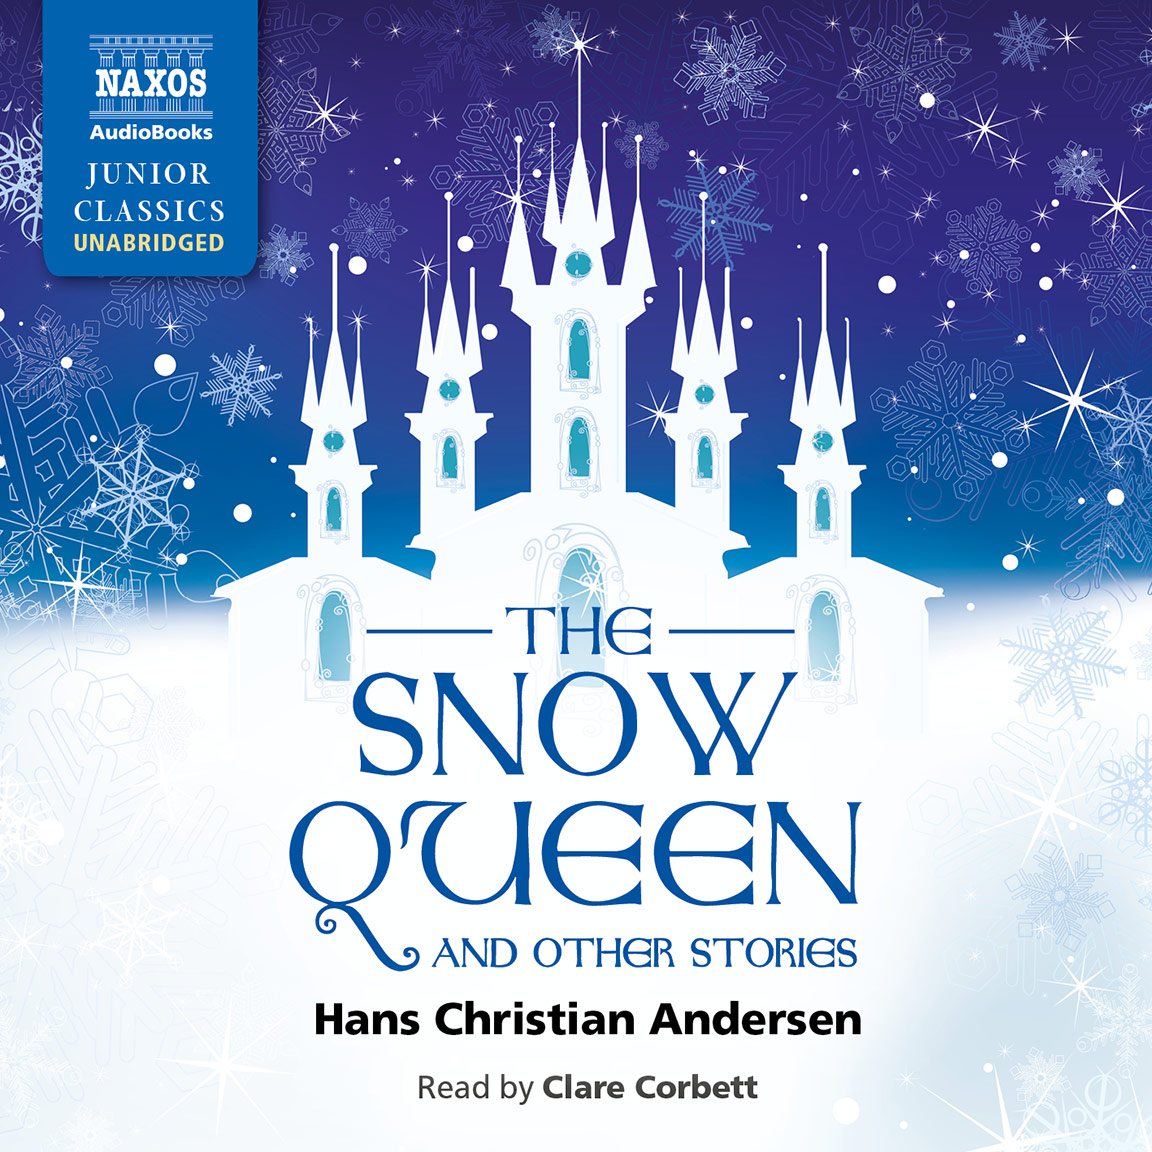 Bildresultat för the snow queen h.c. andersen audio book